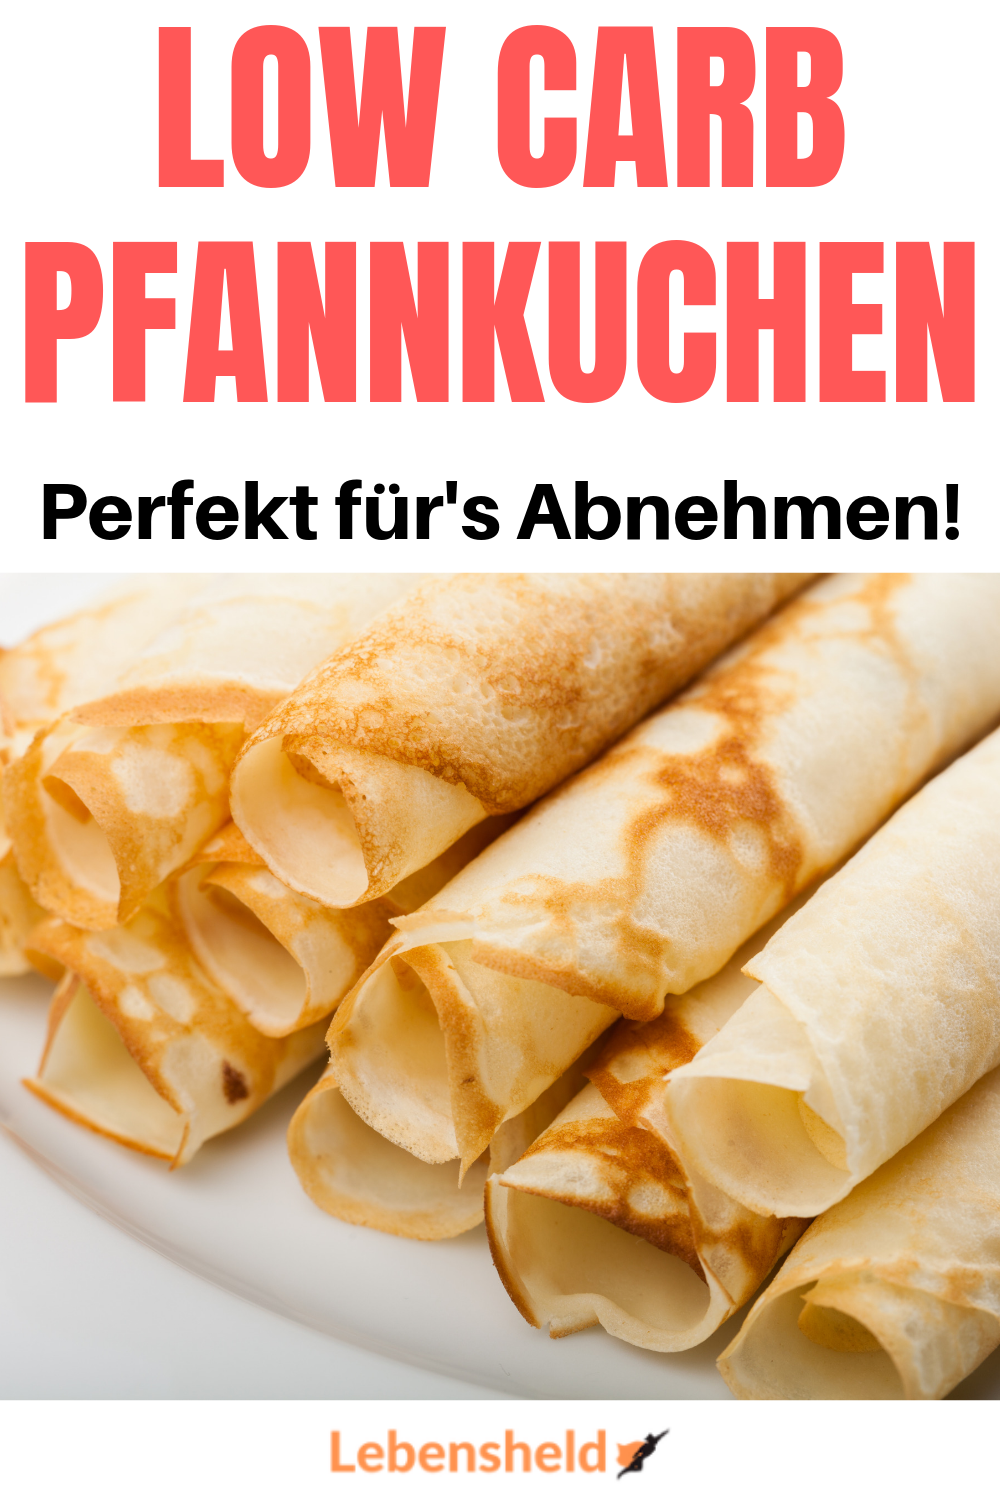 Low carb Pfannkuchen - Perfeke Alternative- Low Carb Held